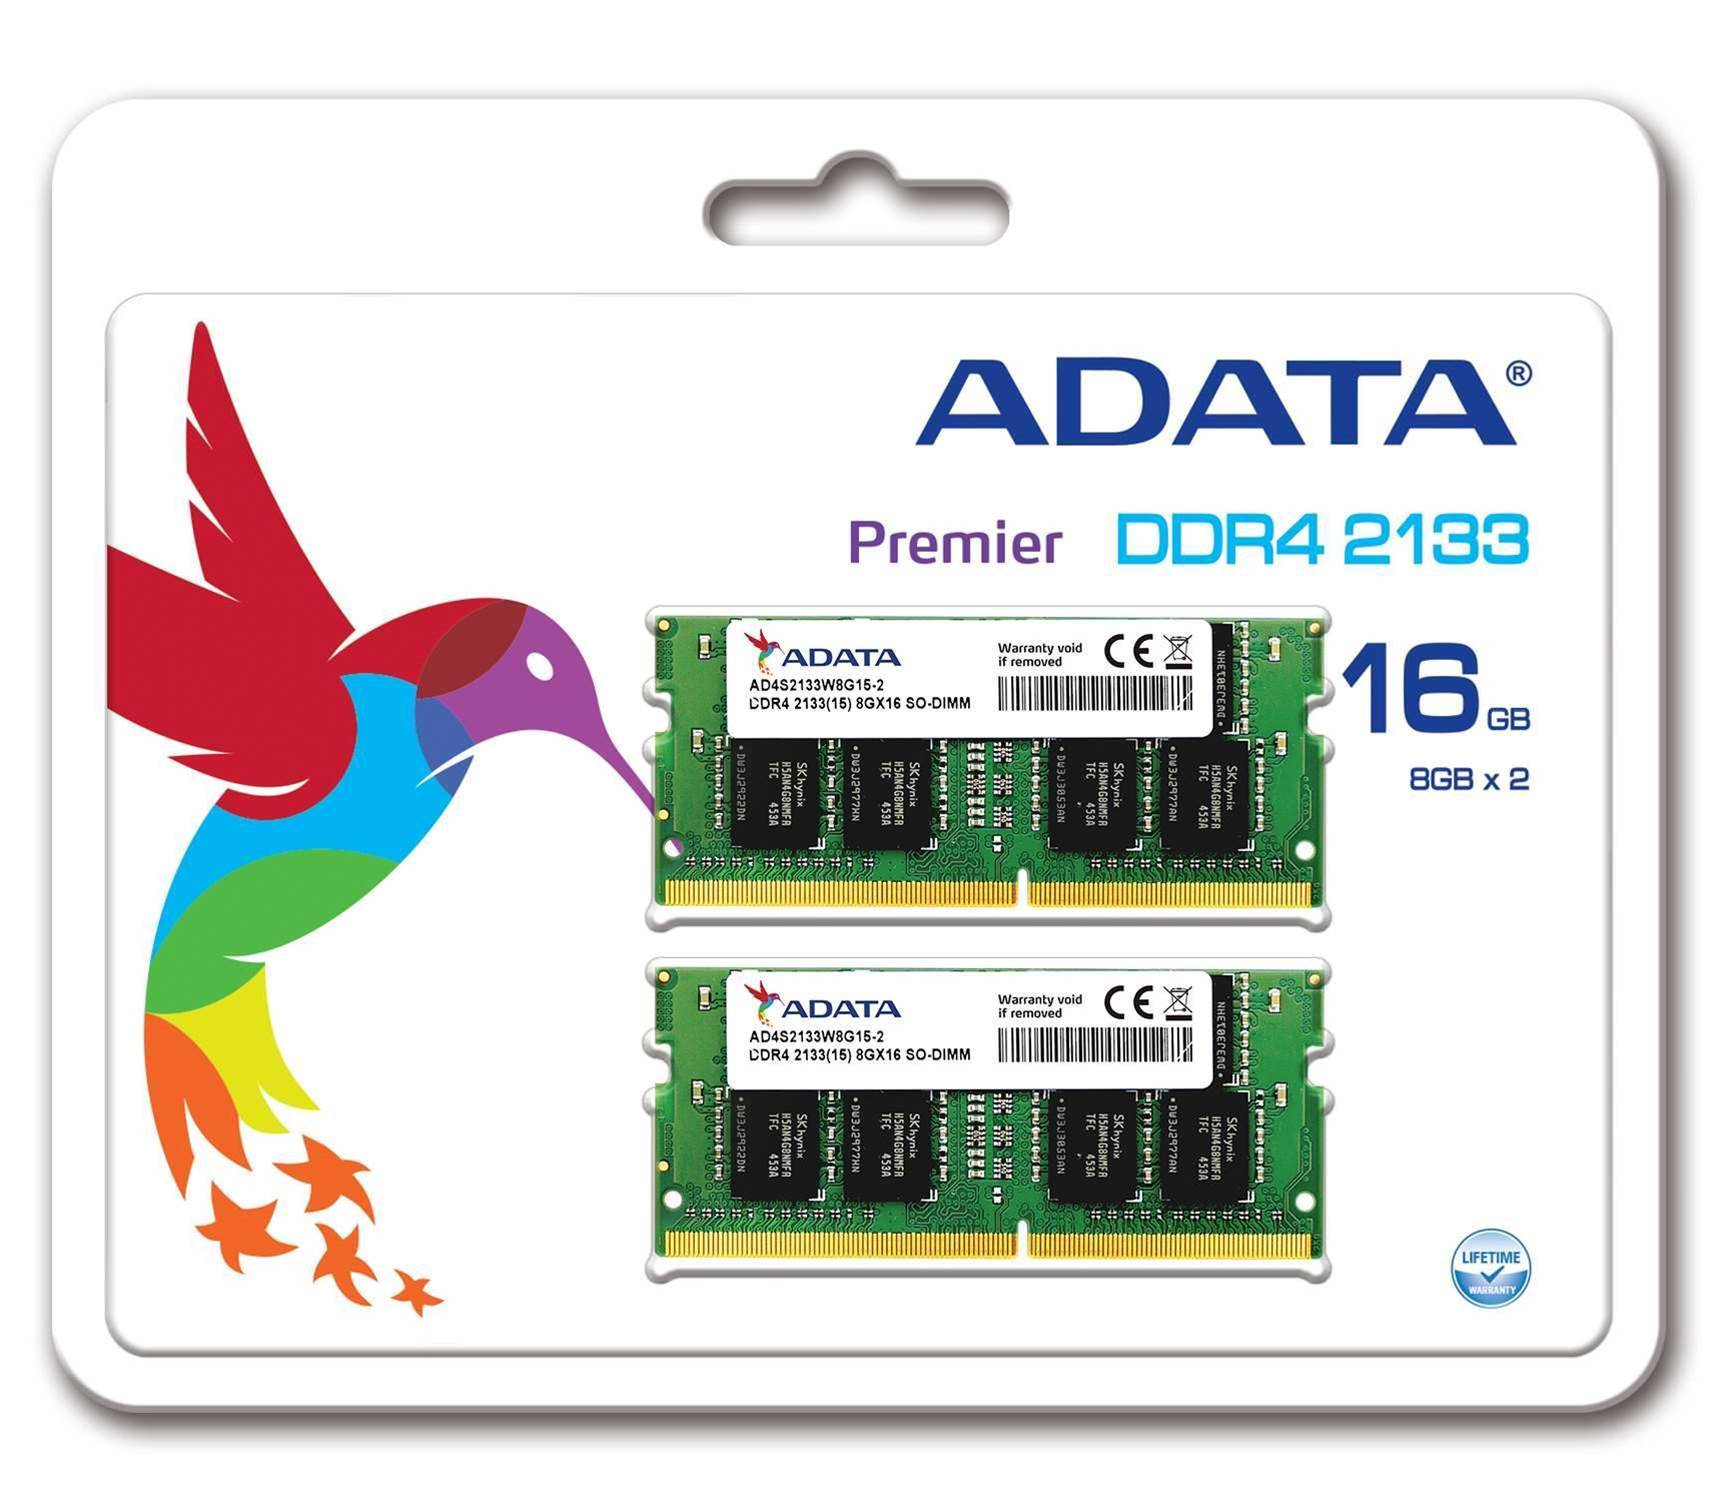 Adata launches DDR4 SO-DIMM kits